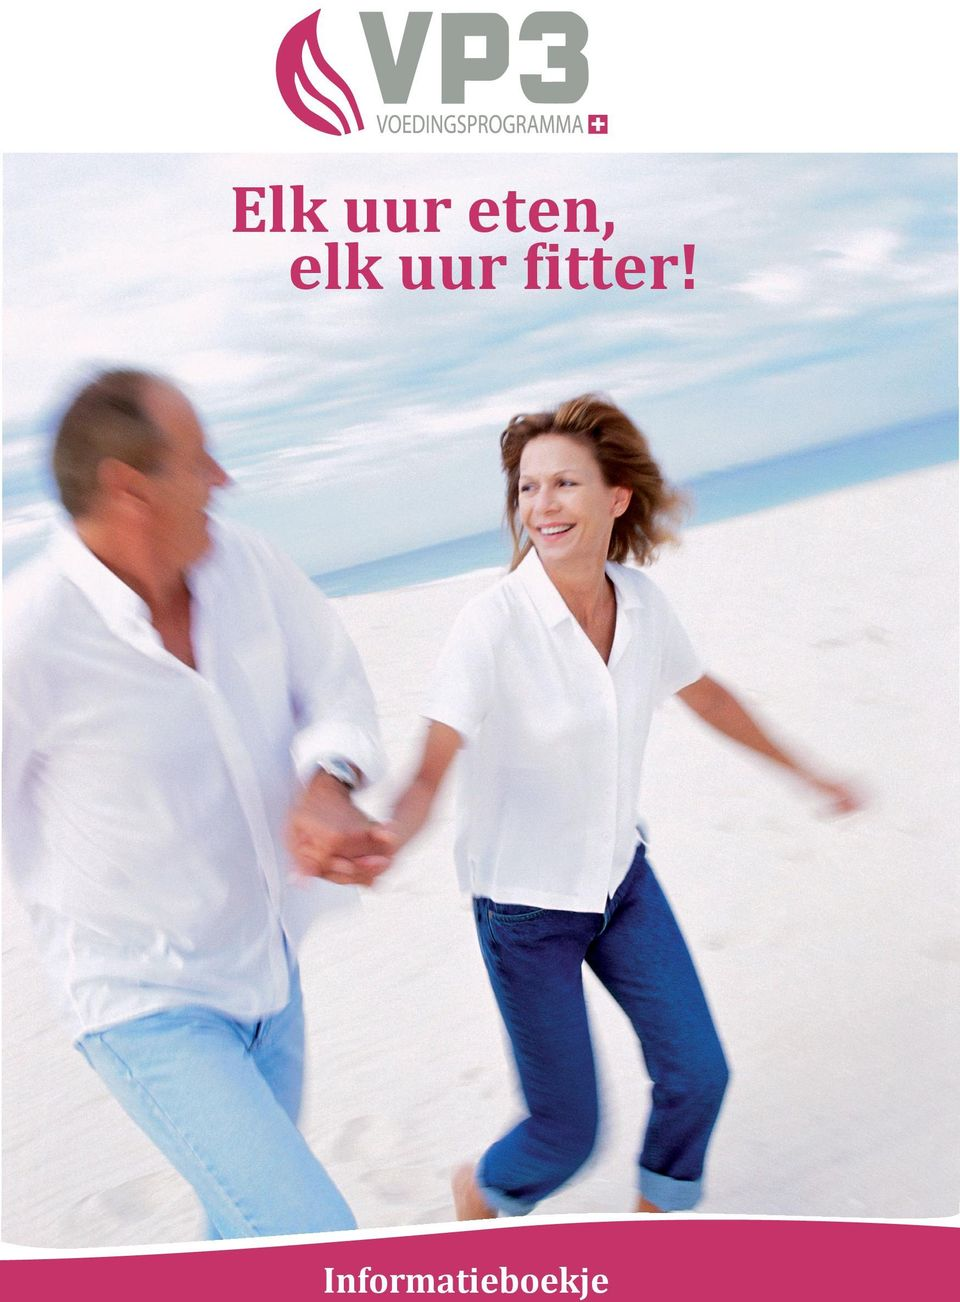 uur fitter!